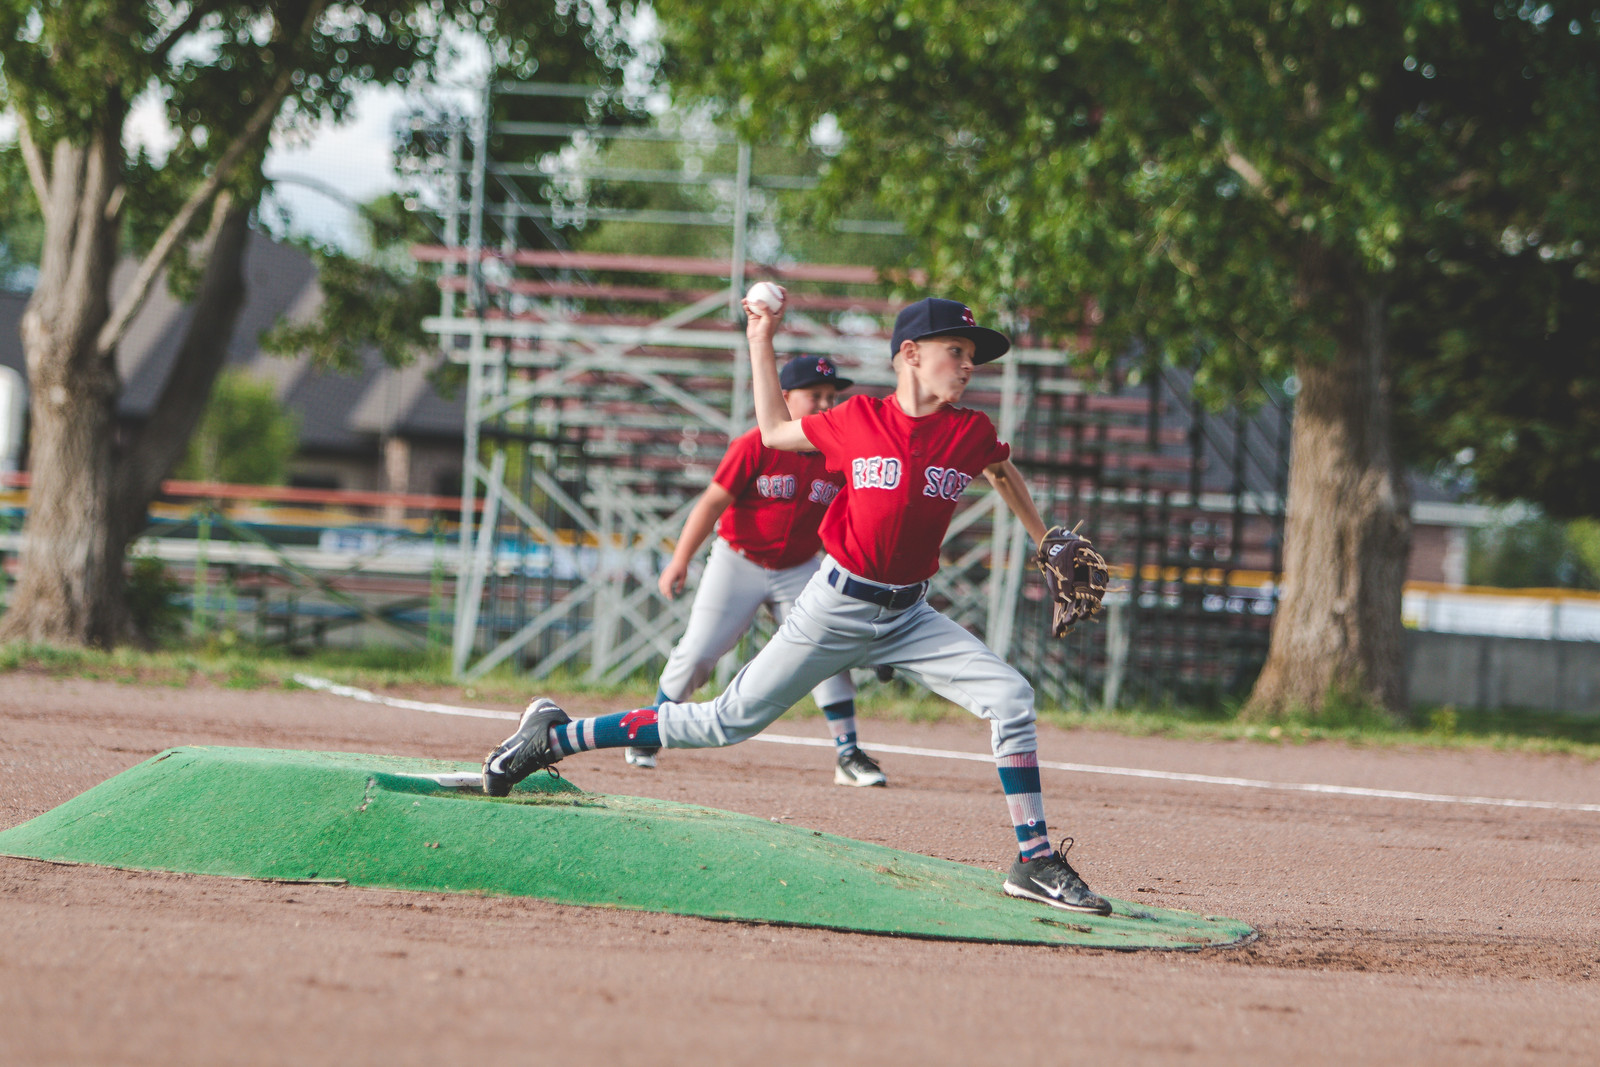 At Grand Baseball Academy, athletes learn from professionals.